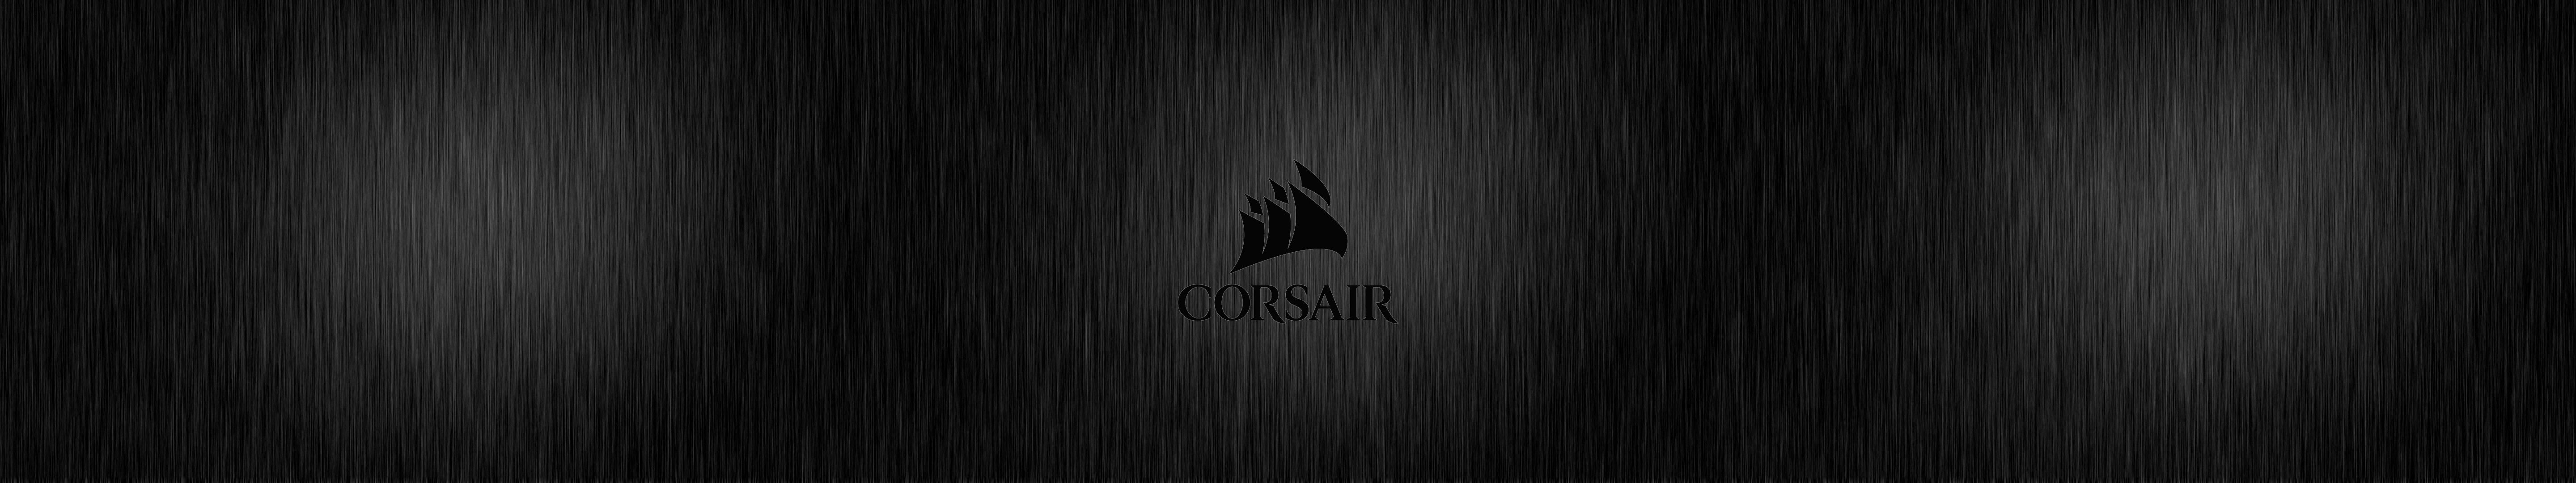 Corsair Red Wallpapers On Wallpaperdog